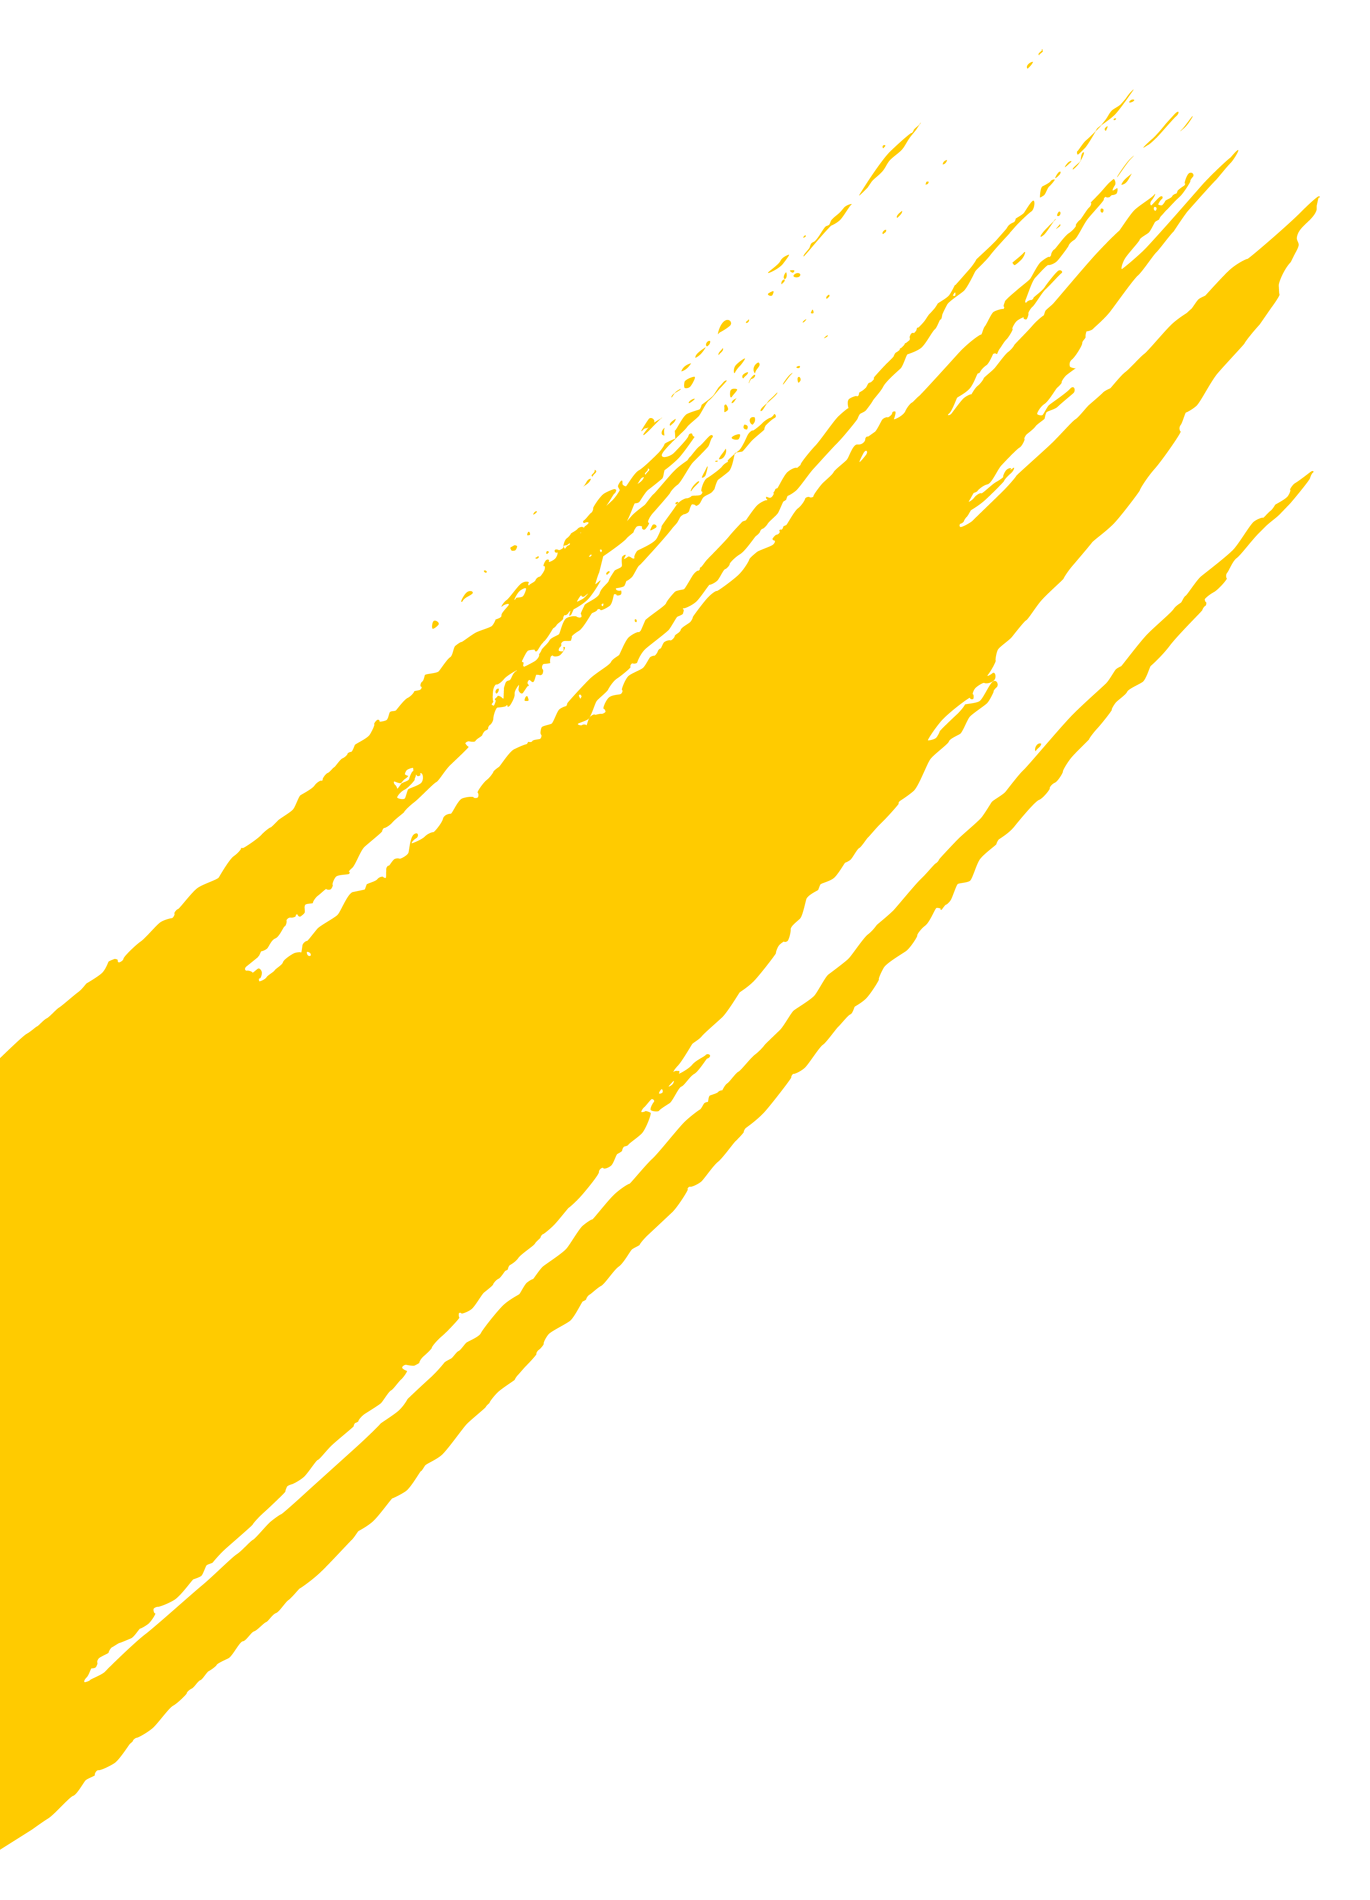 Arc_Brush3_Yellow_PNG.png.